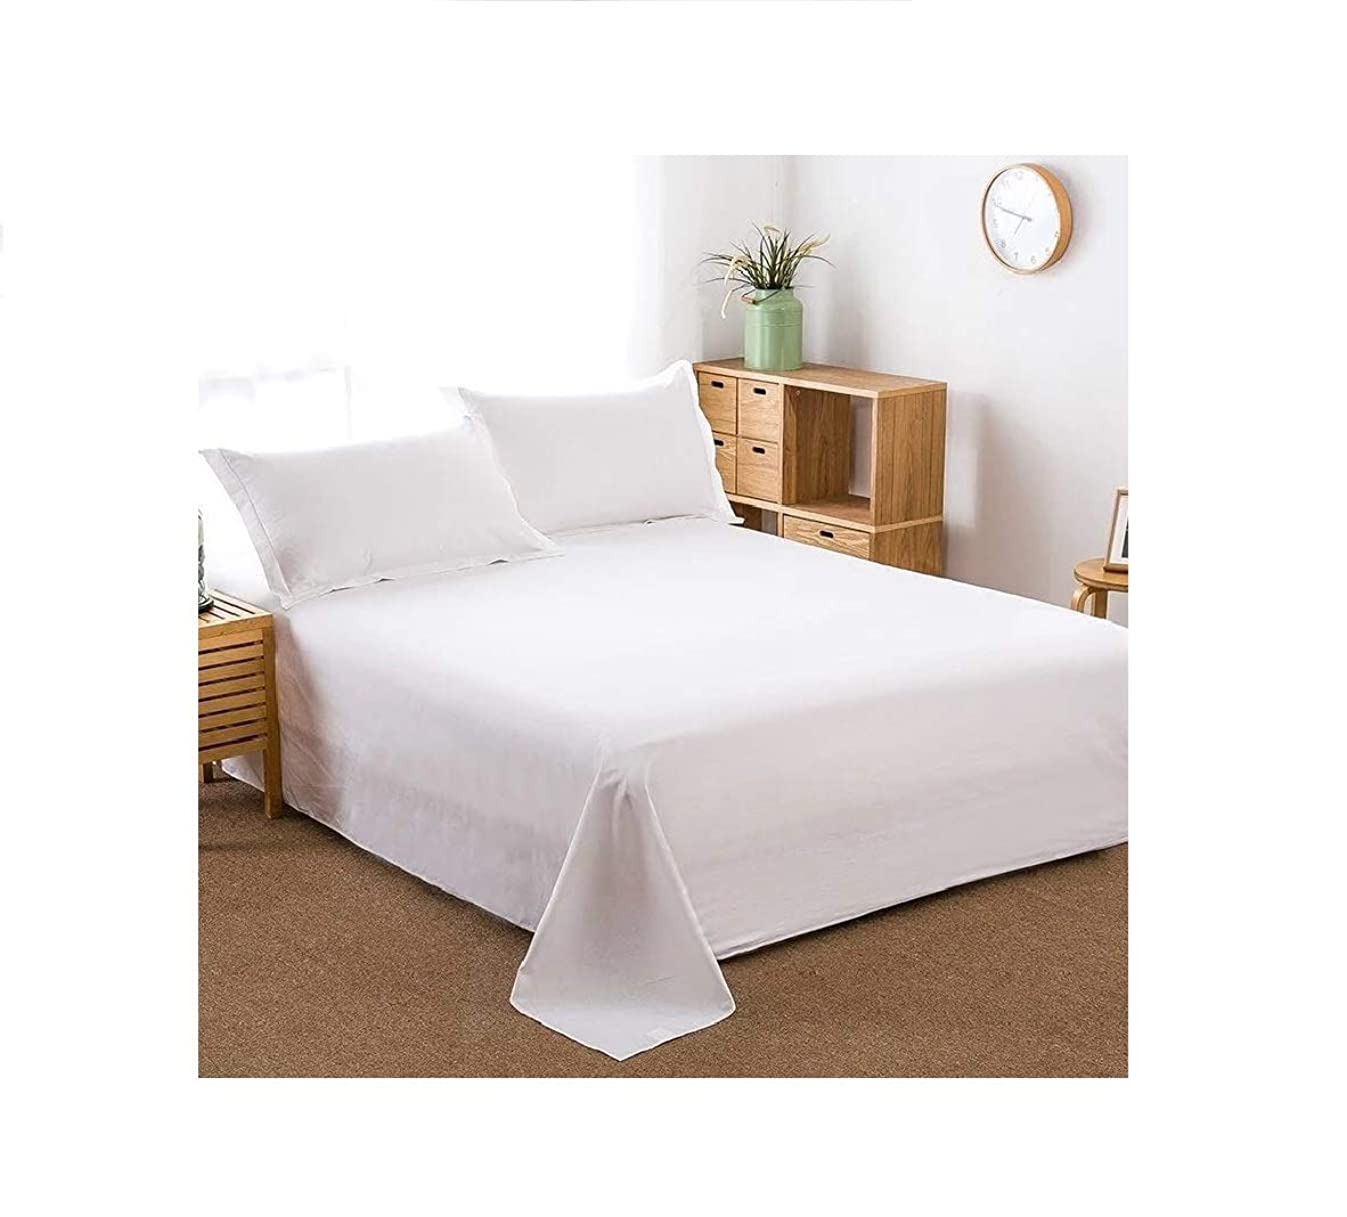 100% Cotton Flat Sheet Only- Superior Quality,Soft,Silky,Skin friendly,Breathable,Comfortable Bed Sheet (Queen, White)